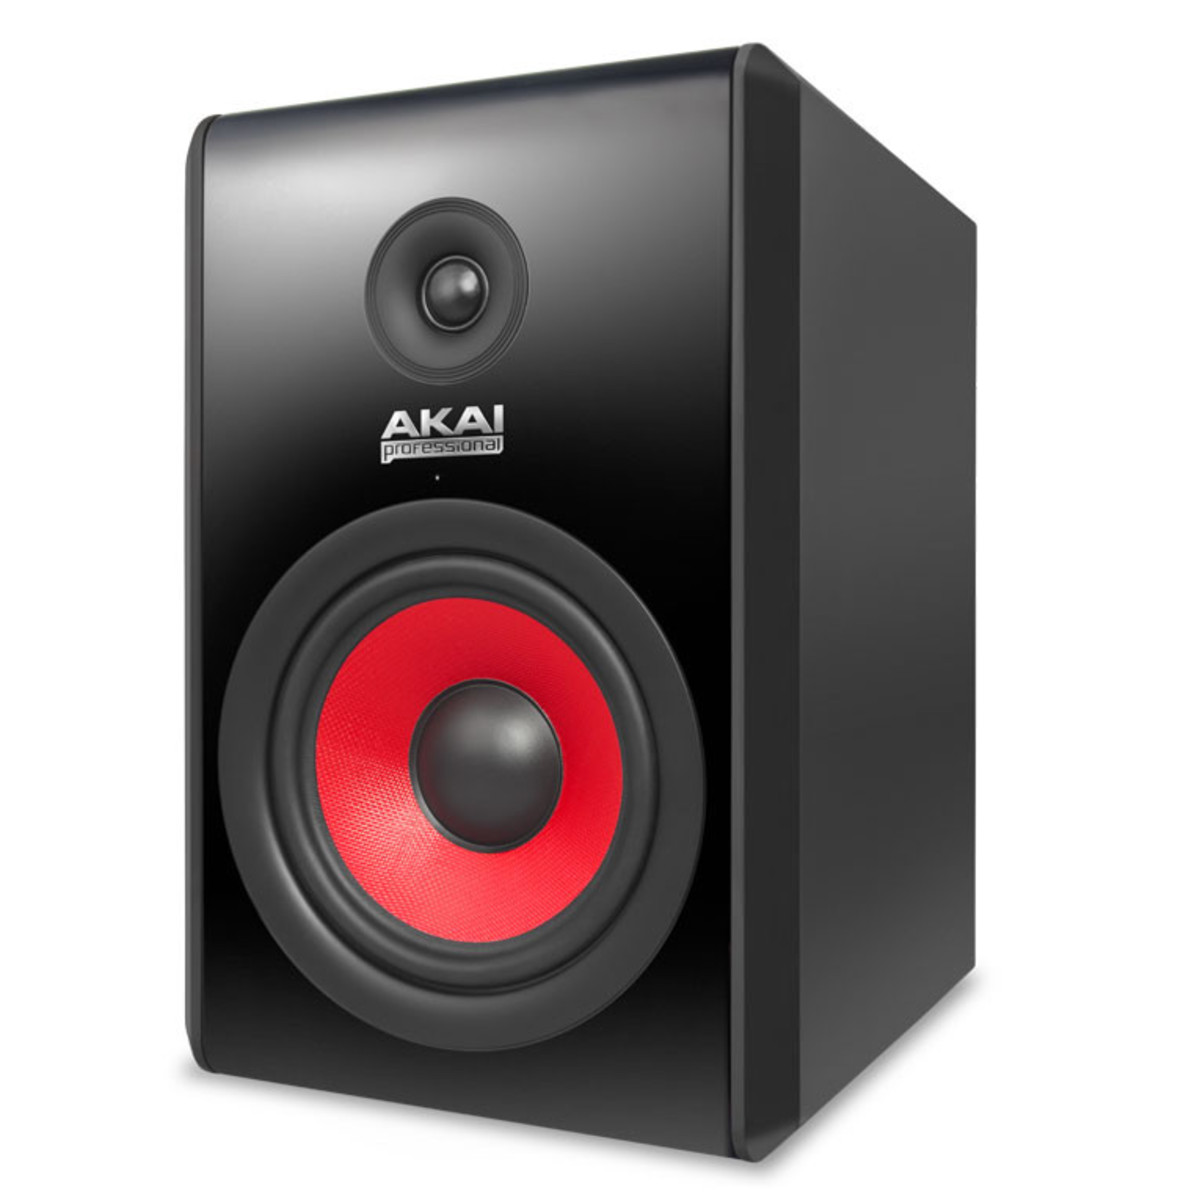 Image of Akai RPM 800 Active Studio Monitor Black (Single)